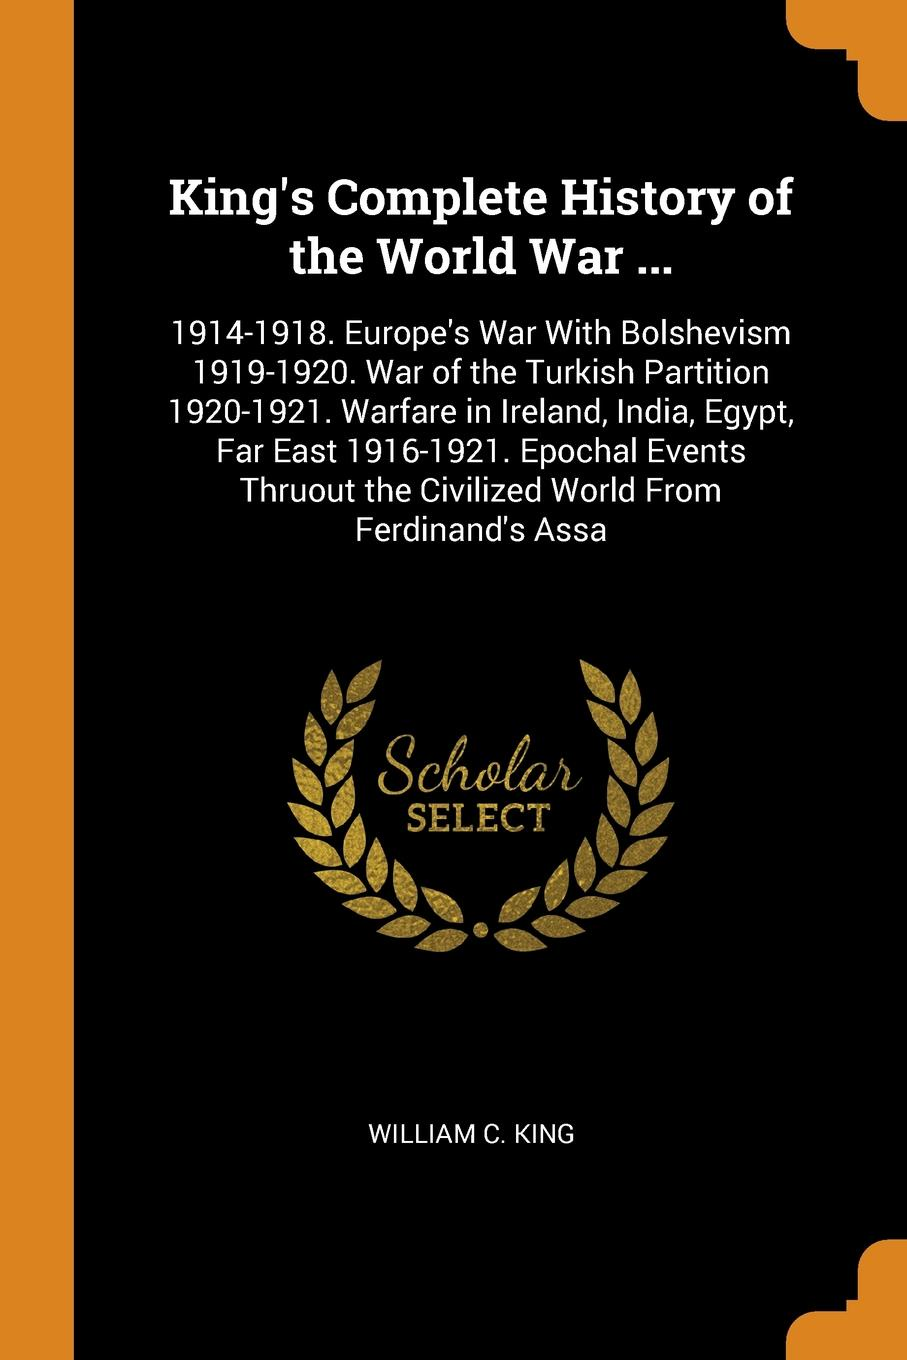 William C. King King's Complete History of the World War ... 1914-1918. Europe's War With Bolshevism 1919-1920. War of the Turkish Partition 1920-1921. Warfare in Ireland, India, Egypt, Far East 1916-1921. Epochal Events Thruout the Civilized World From Ferdinand...